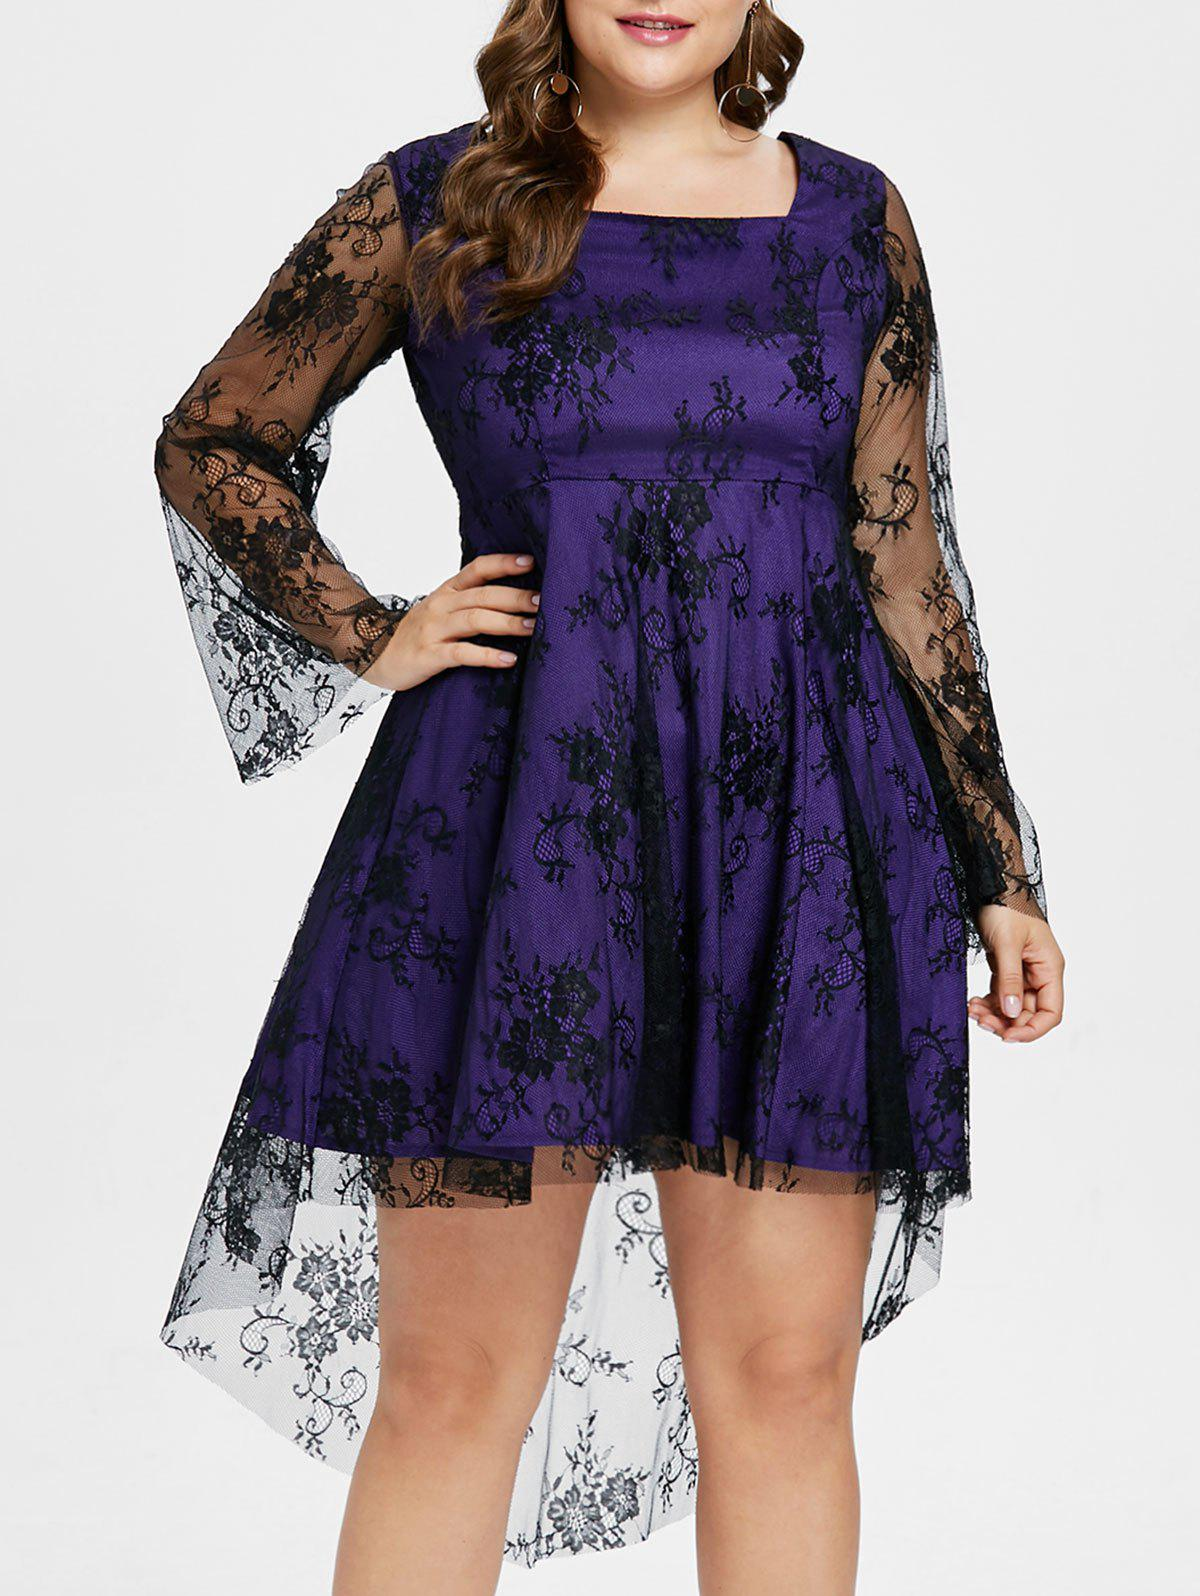 92e48a3506cf 49% OFF] Plus Size High Low Lace Overlay Dress | Rosegal